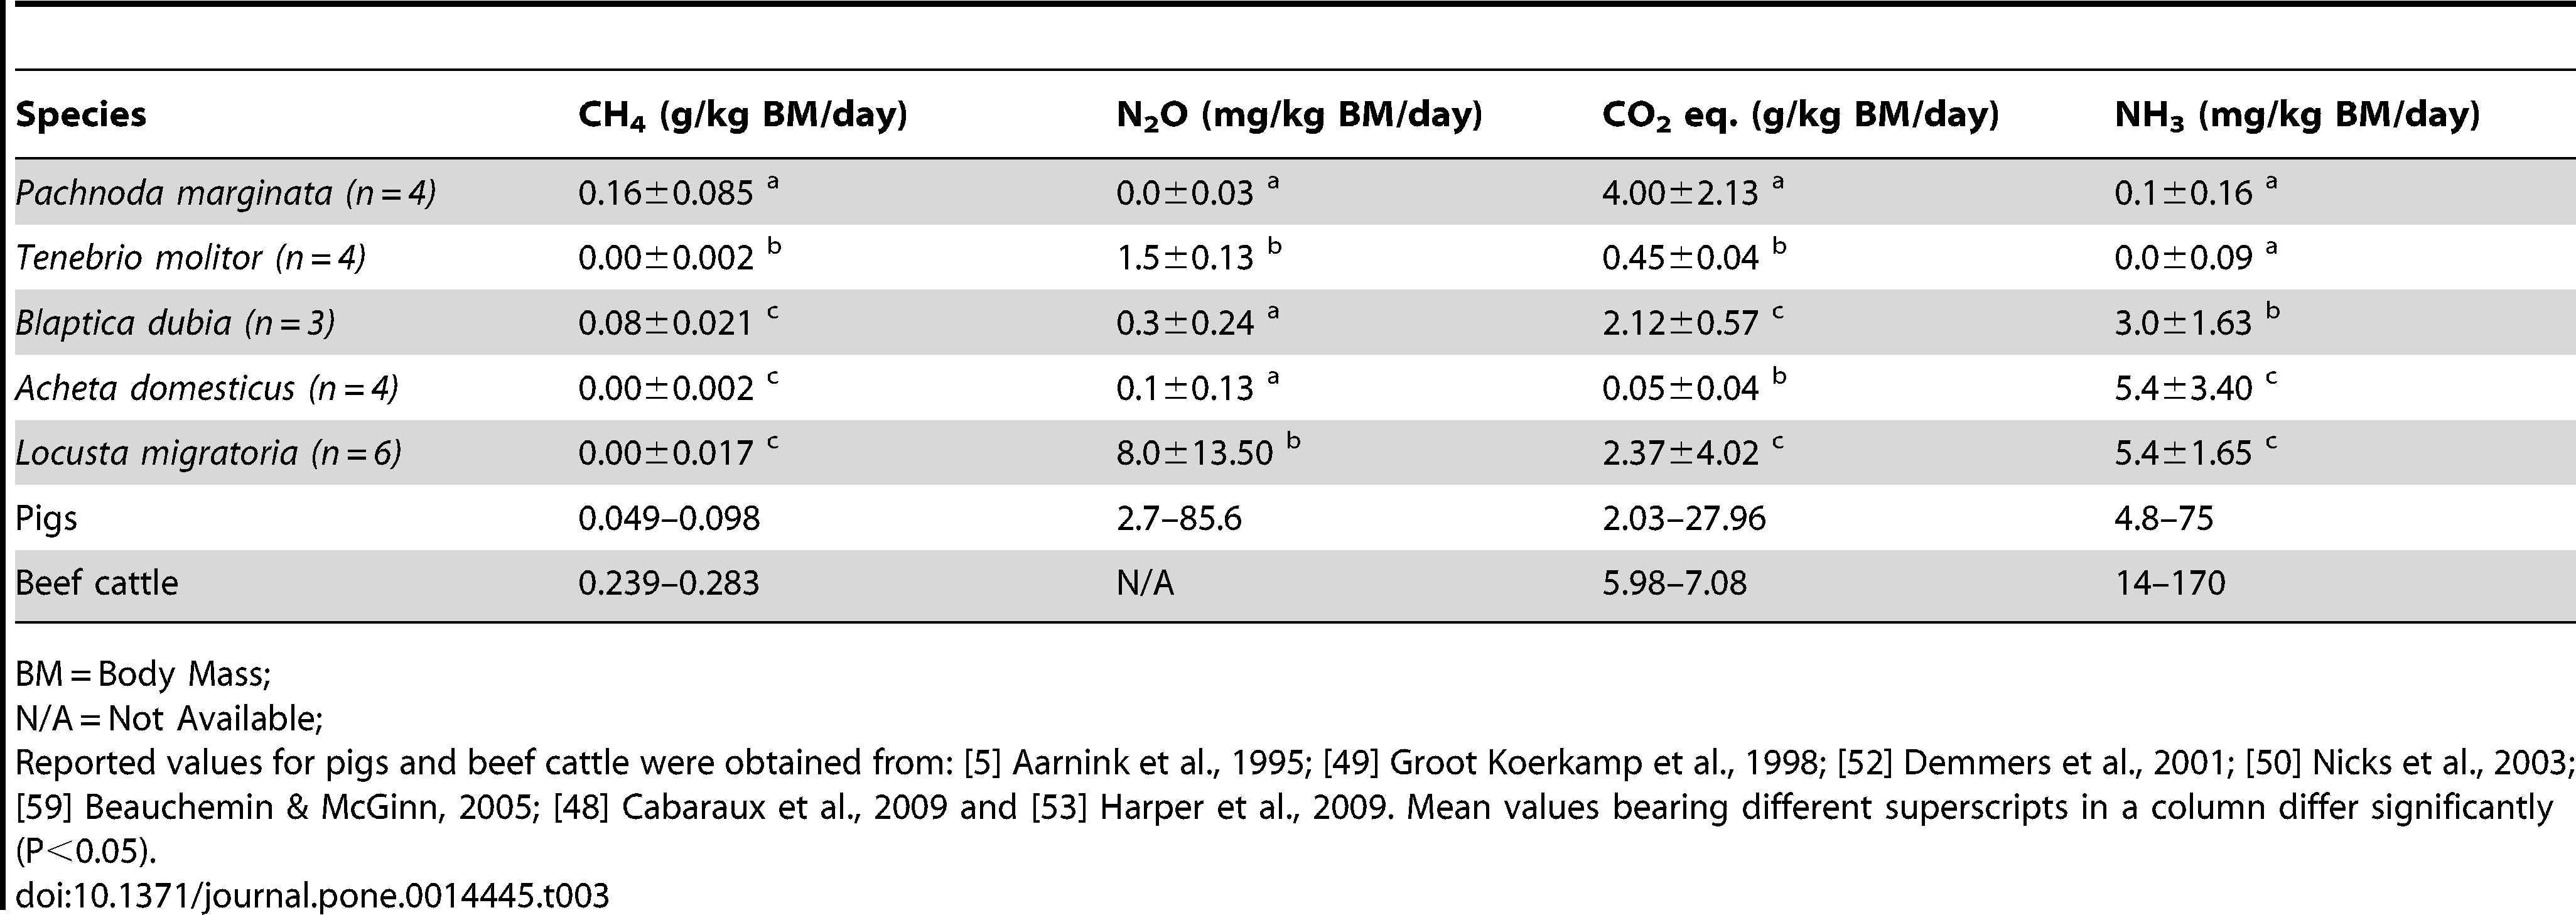 CH4, N2O, CO2 and NH3 production per kilogram of bodymass per day for five insect species, pigs and beef cattle.